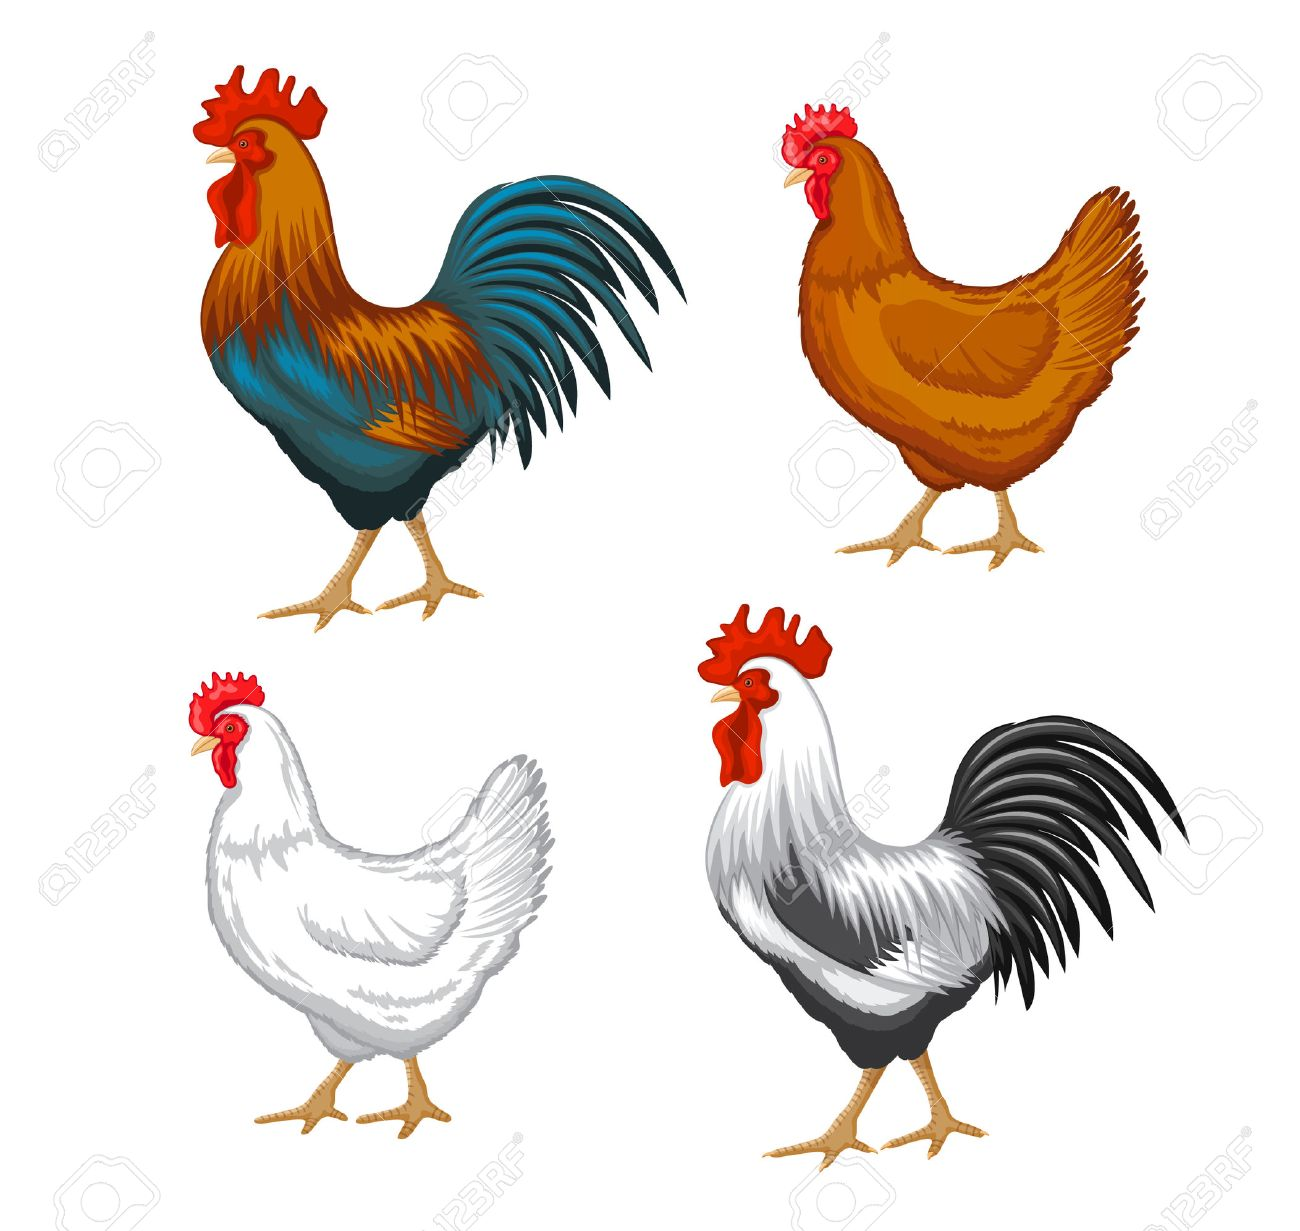 chickens set vector illustration in color brown and white hen